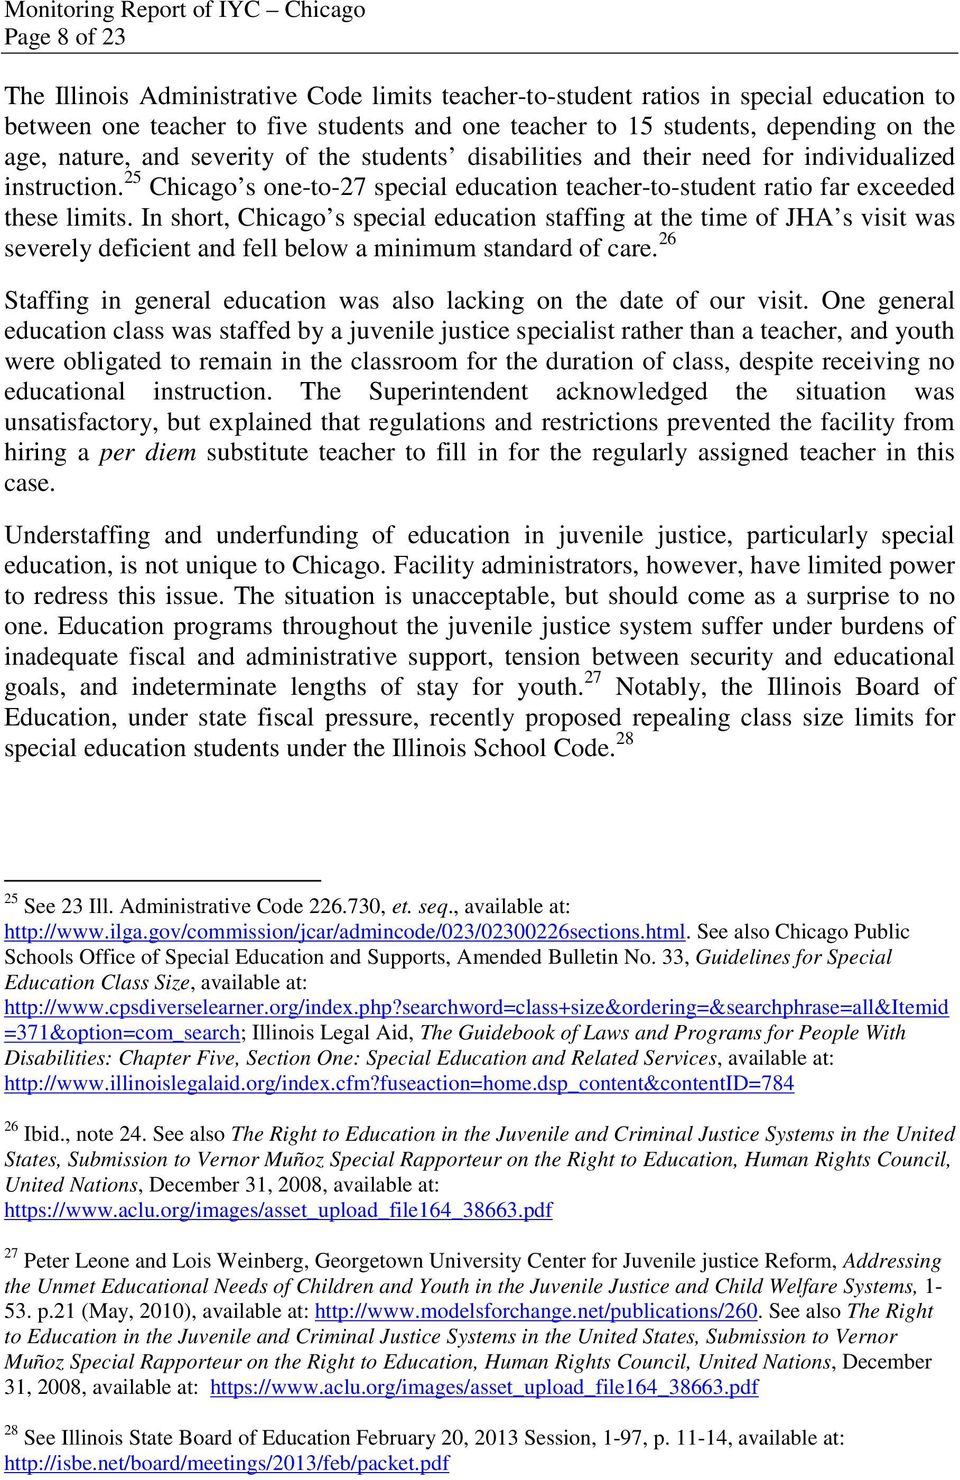 In short, Chicago s special education staffing at the time of JHA s visit was severely deficient and fell below a minimum standard of care.